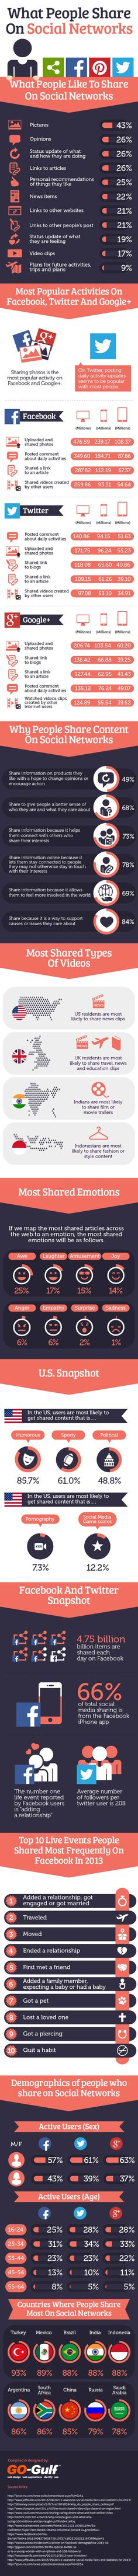 What People Share On #Facebook, Twitter and GooglePlus — #SocialMedia Stats #infographic